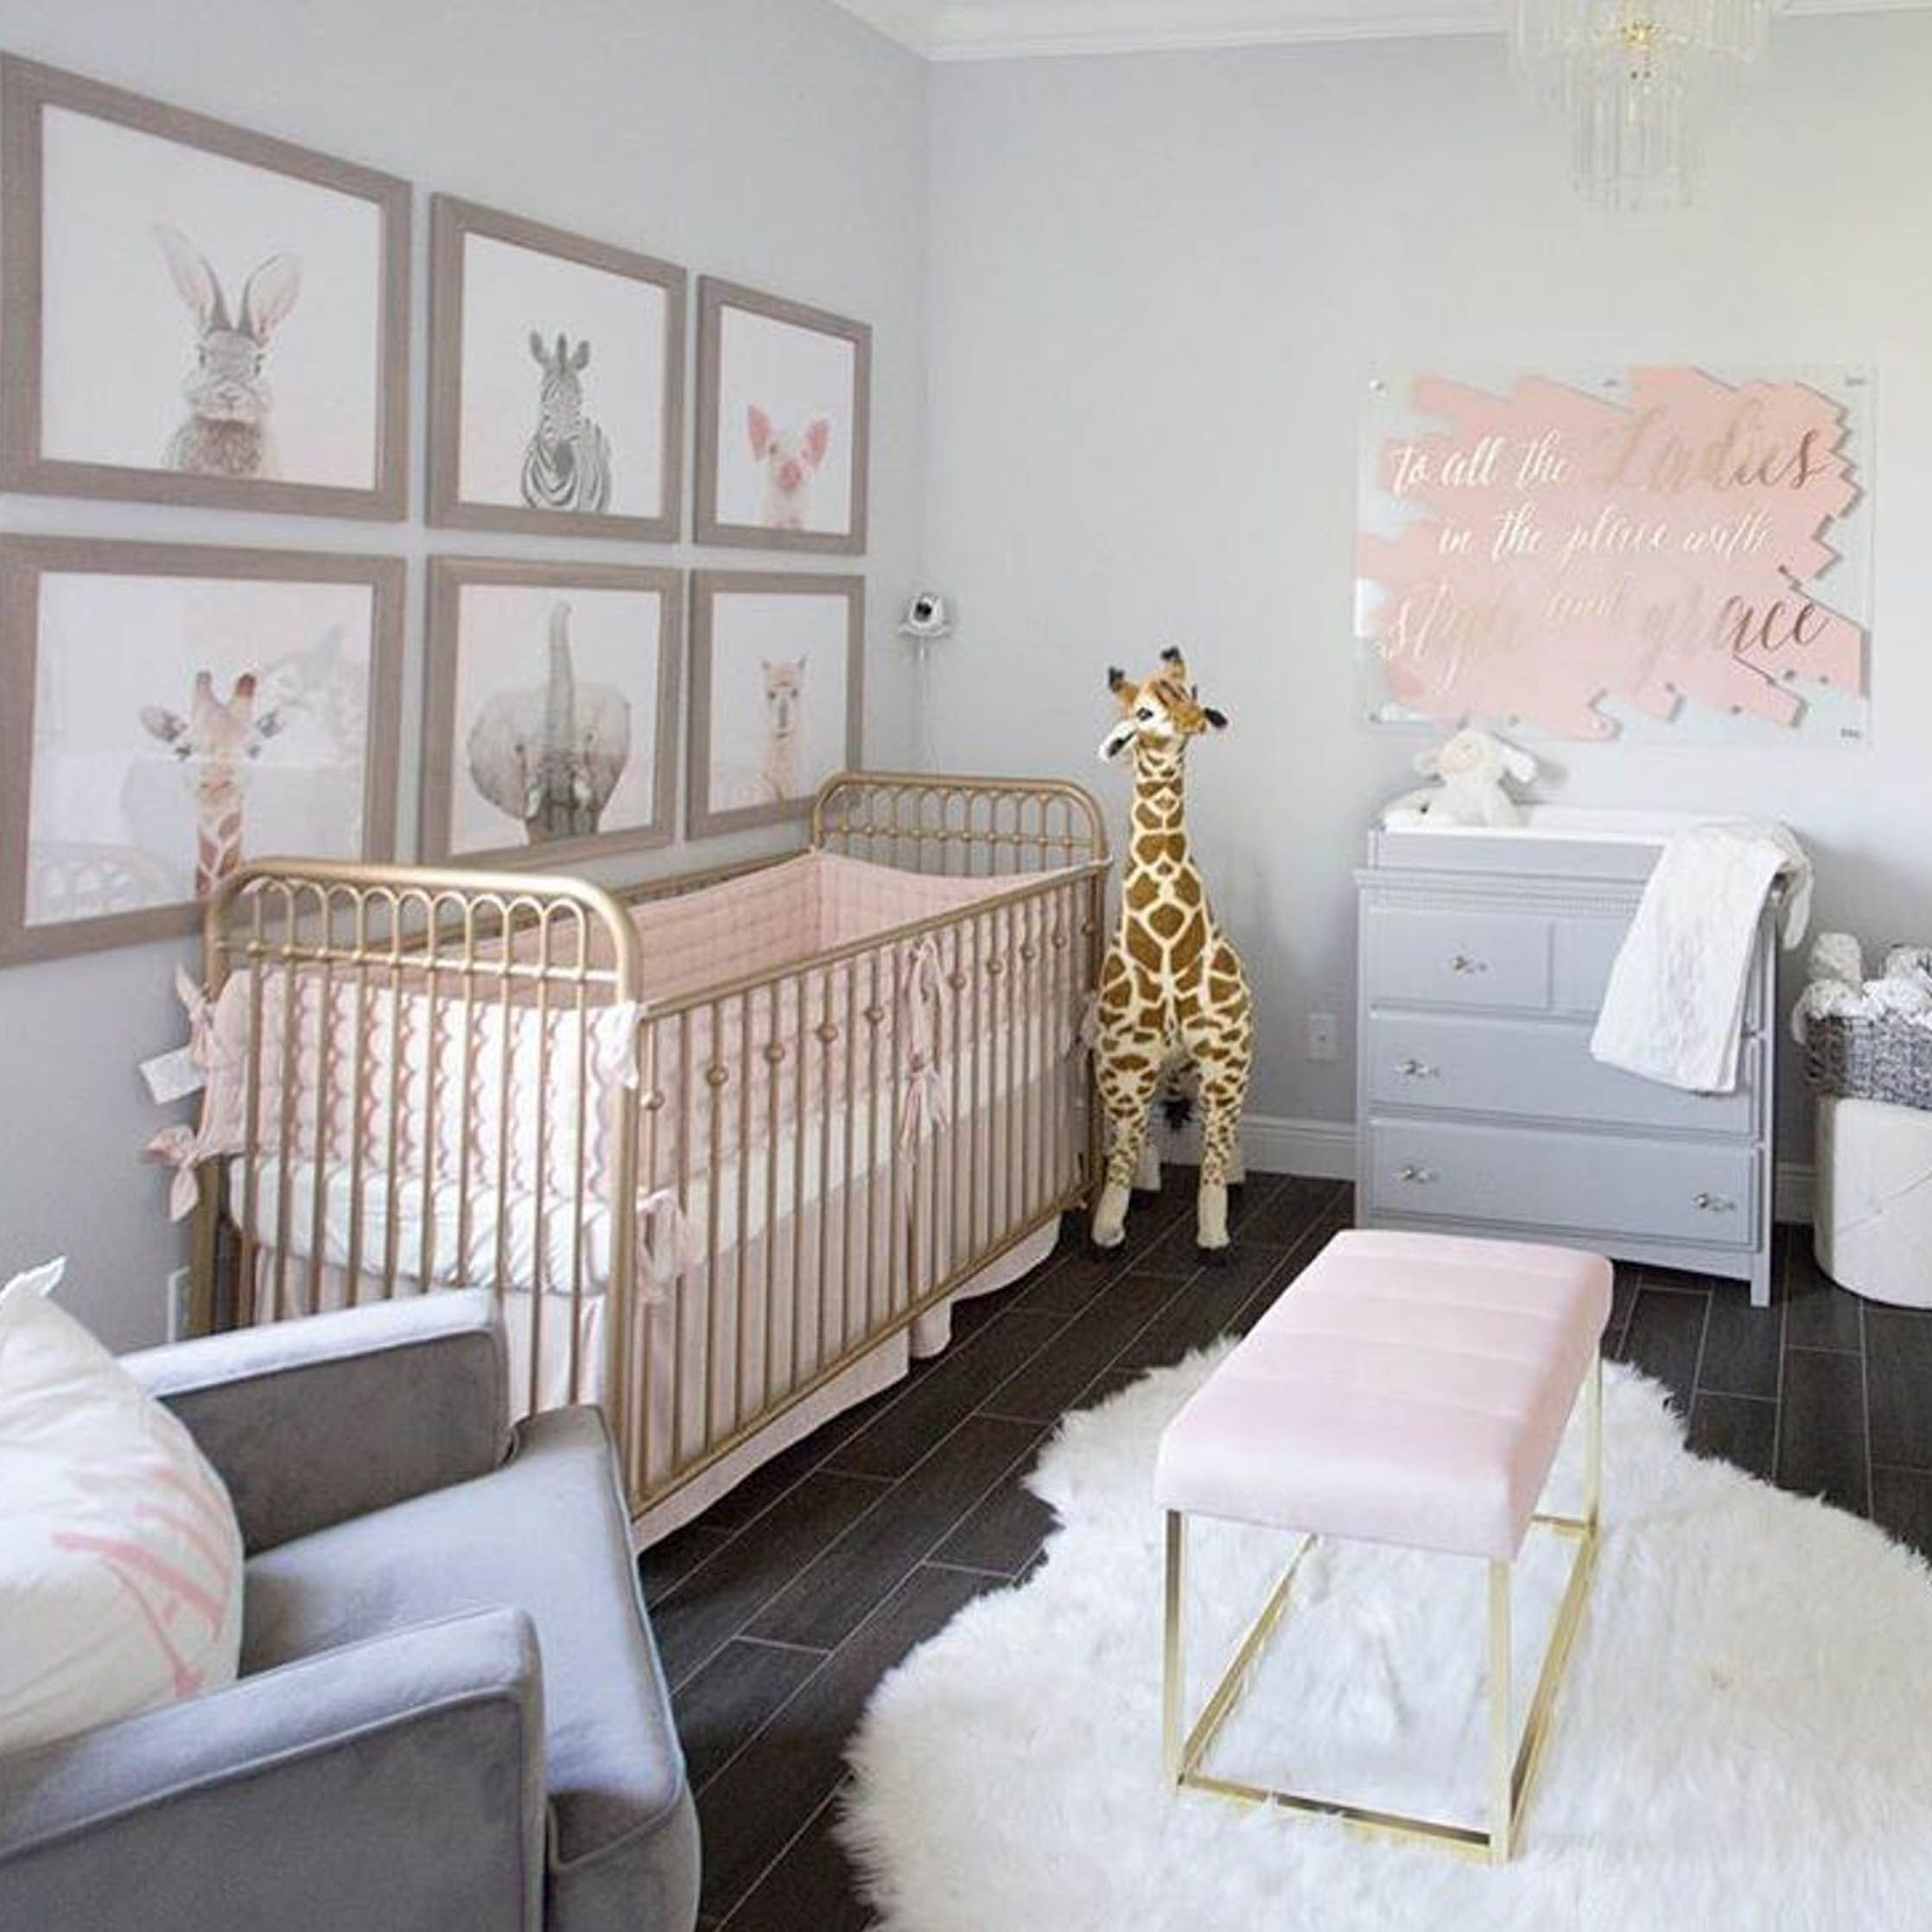 Simple Decorating Girl Nursery Design: Here's What's Trending In The Nursery